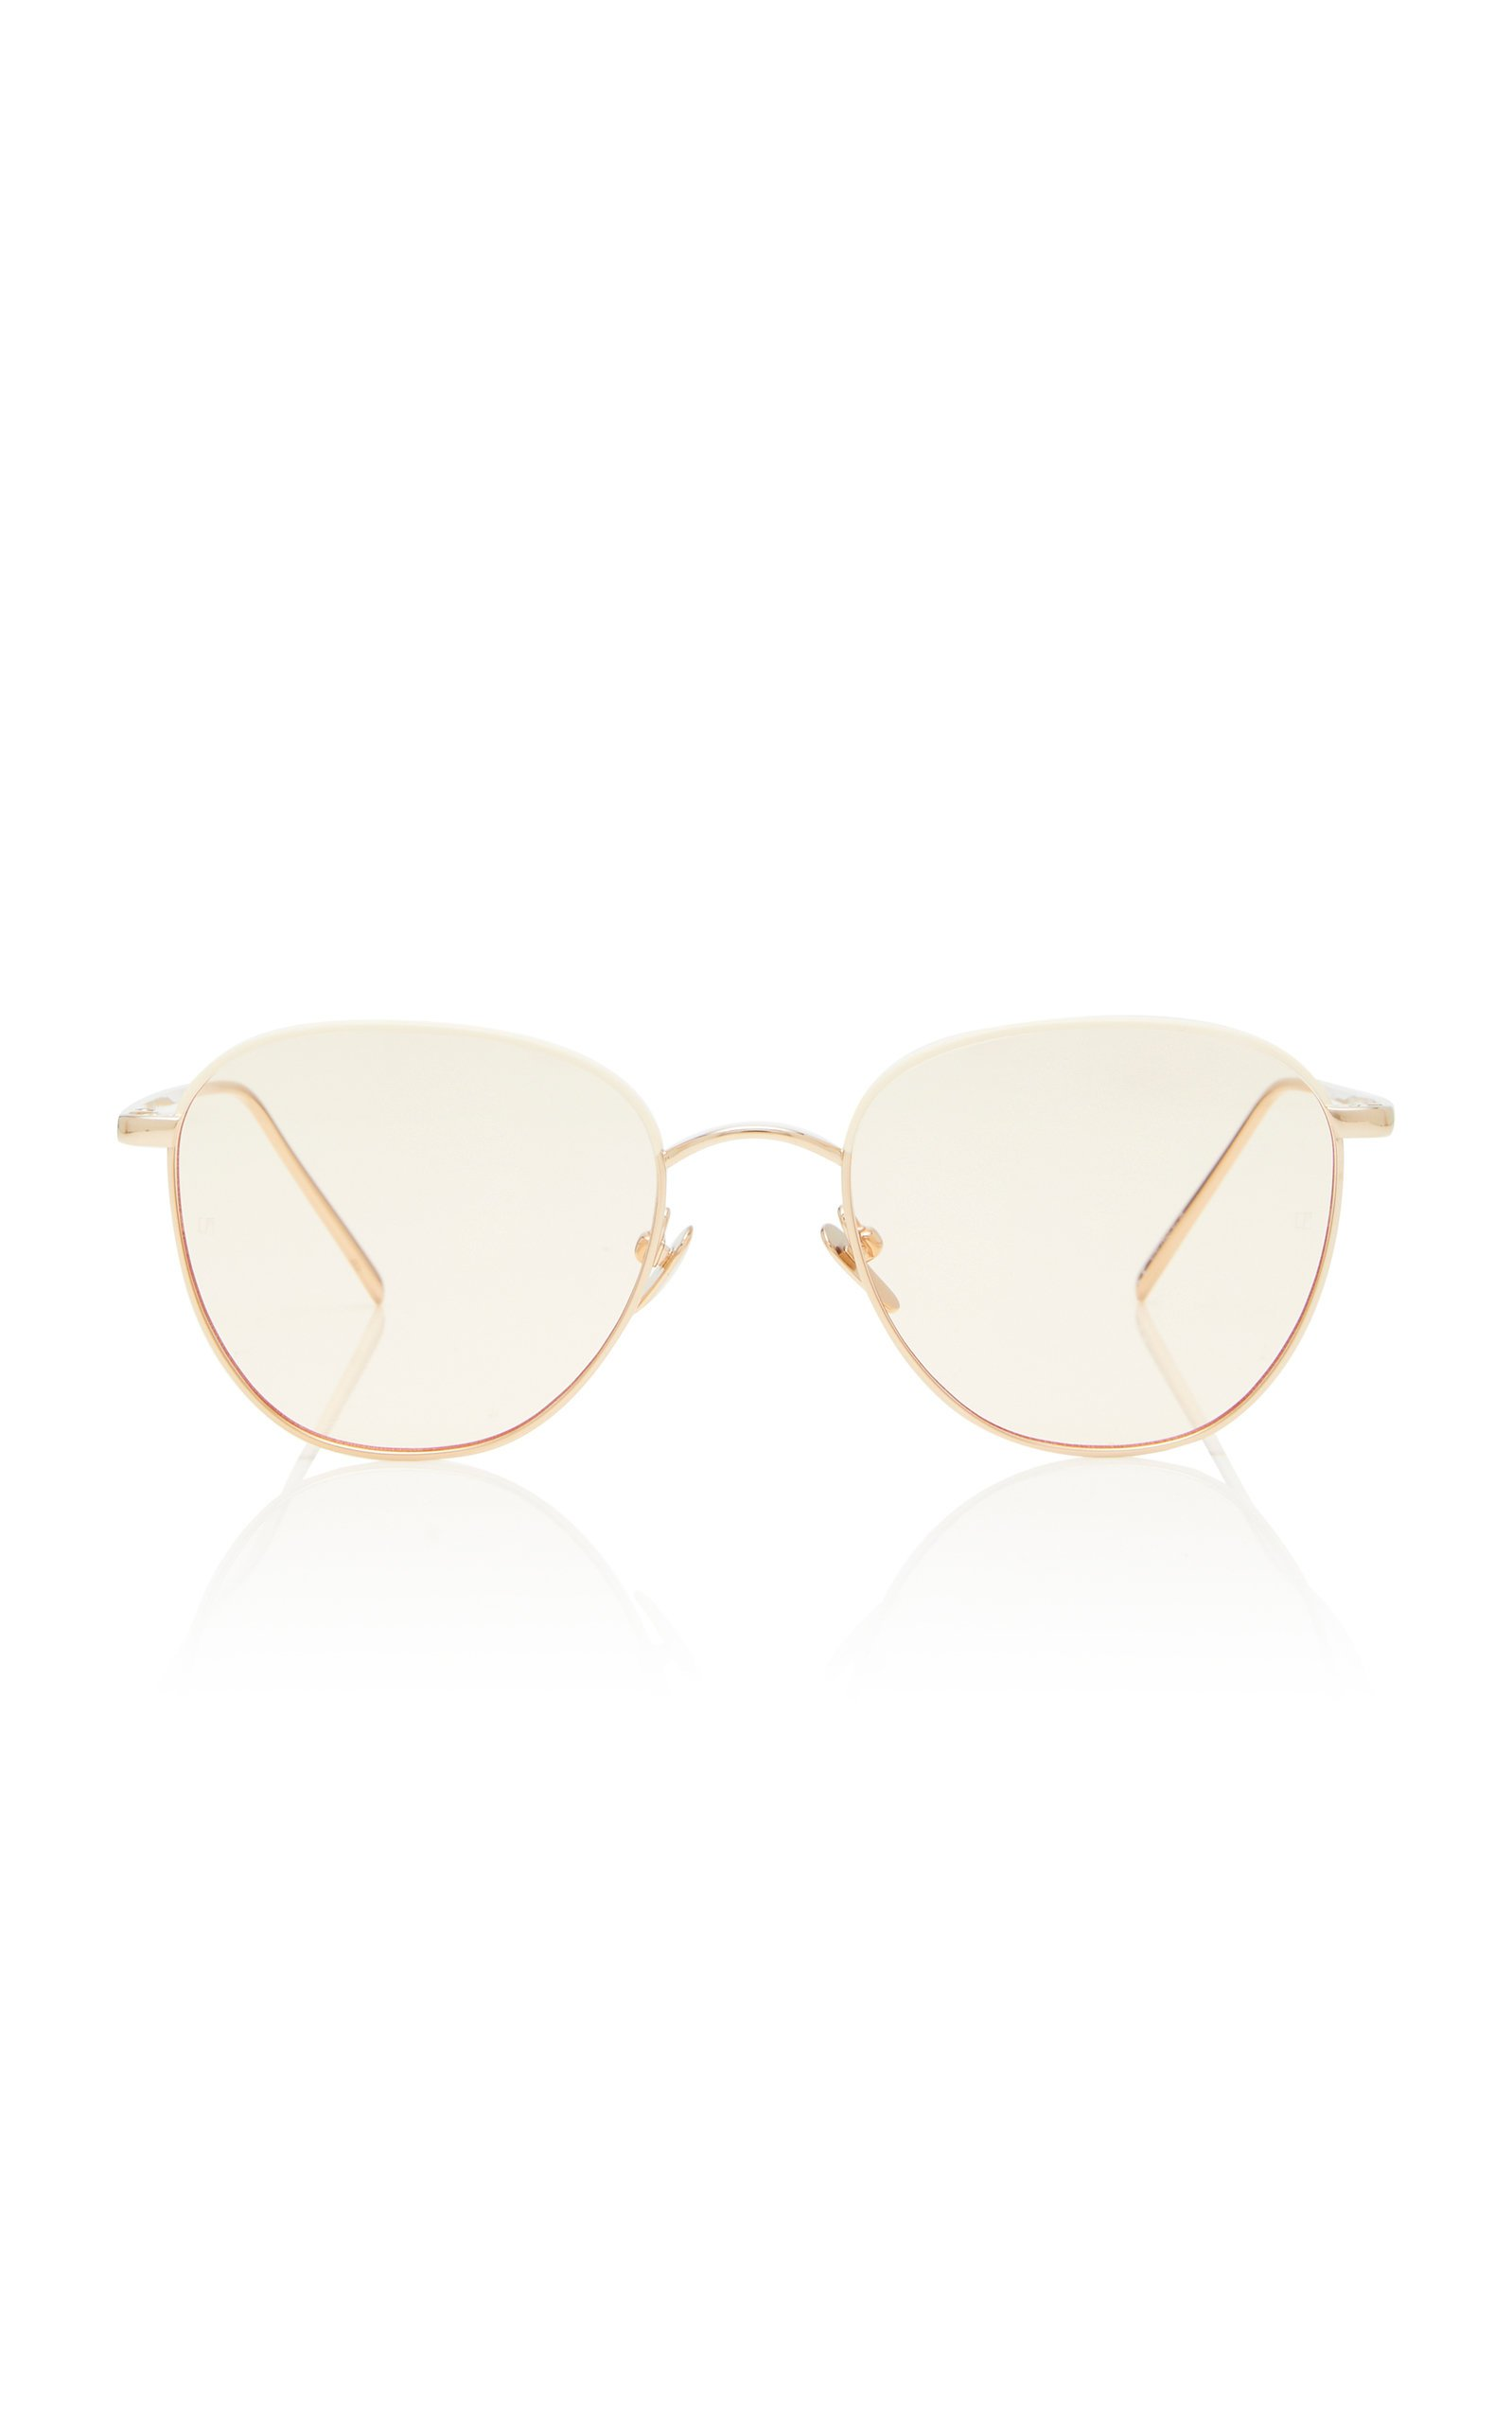 Linda Farrow Gold-Tone Metal Aviator Sunglasses